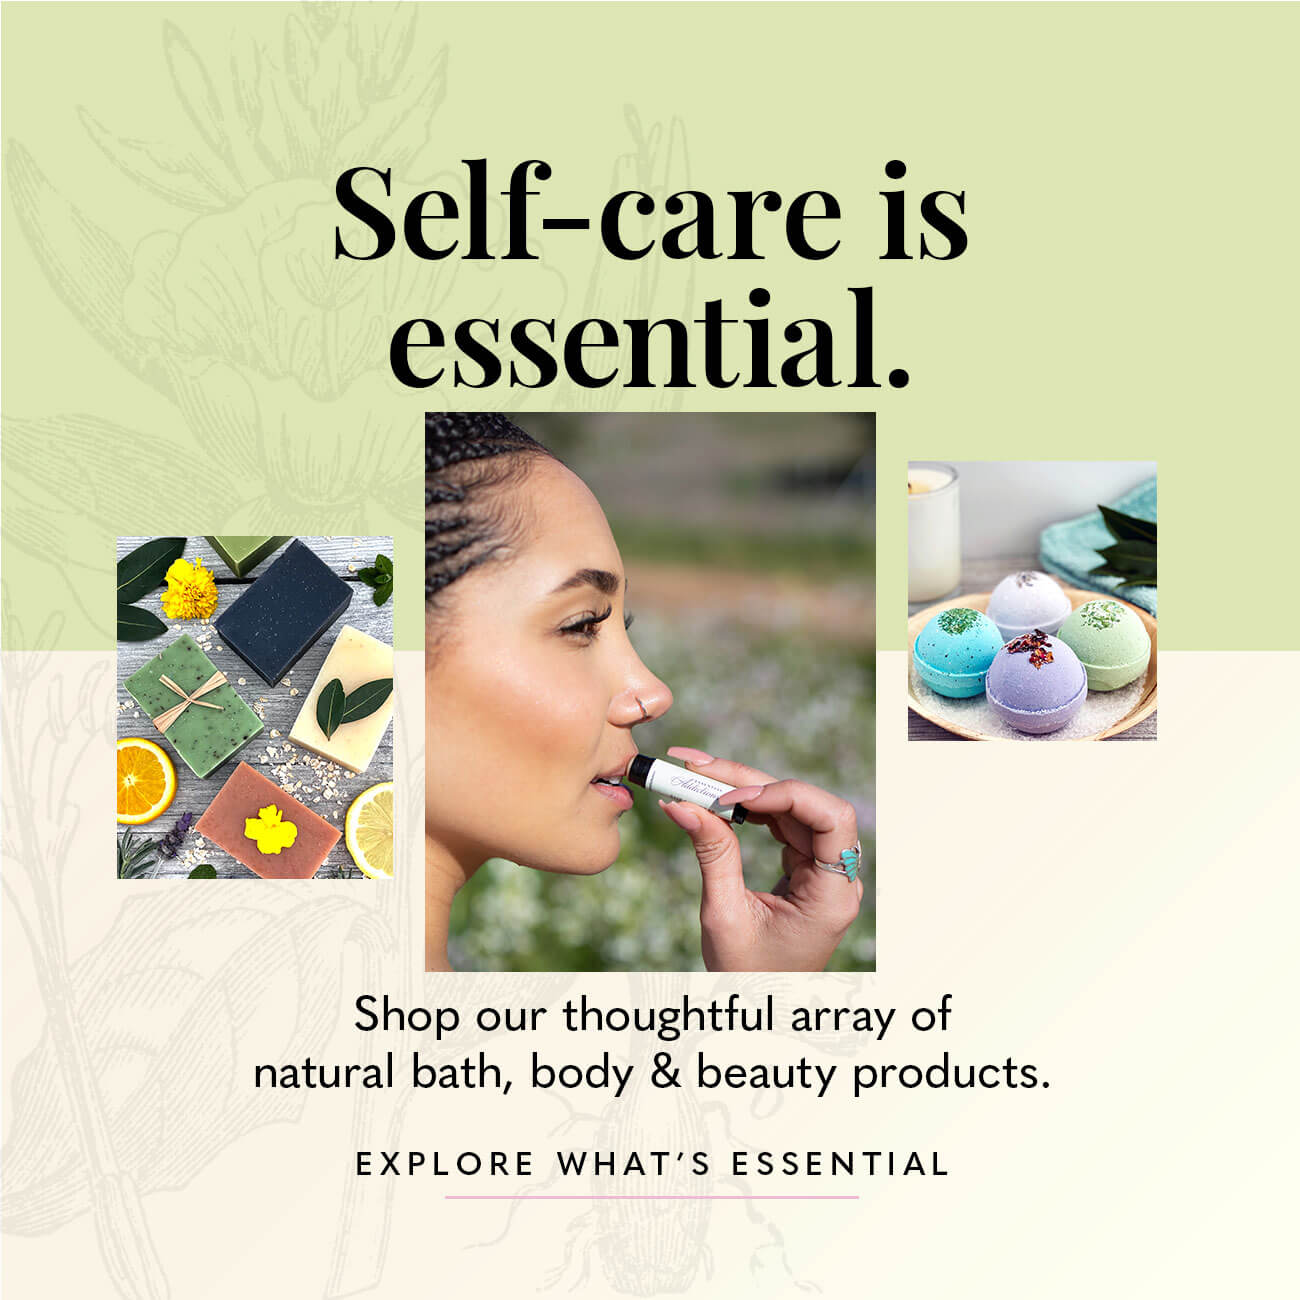 Self-care is essential.